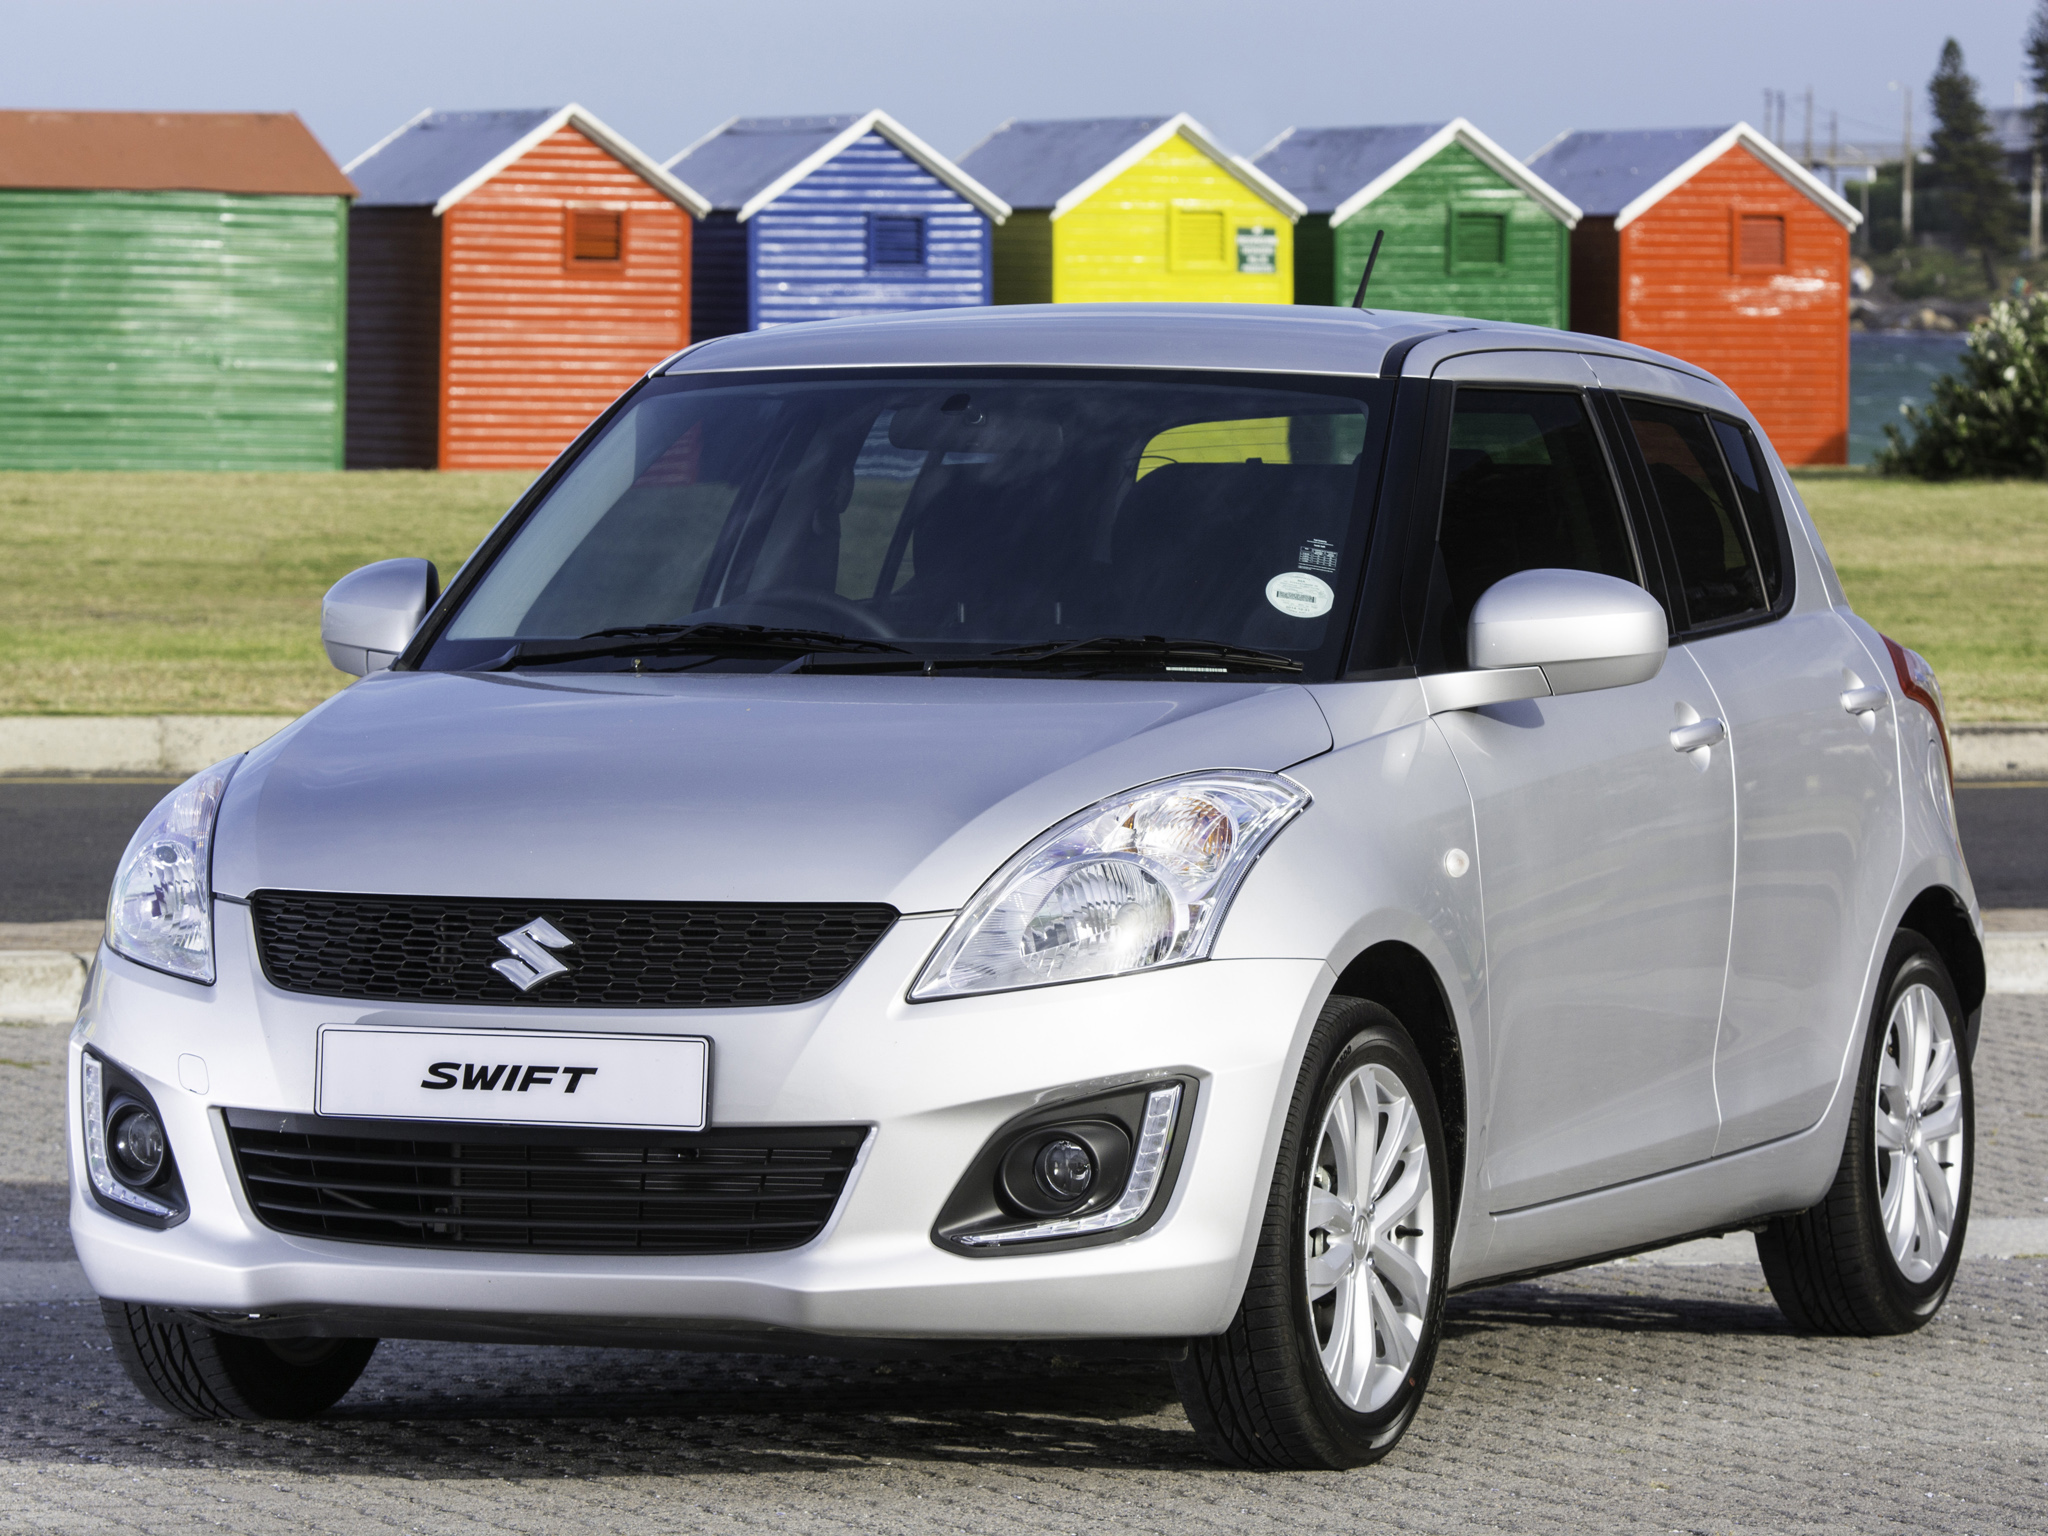 2014 suzuki swift 5 door za spec r wallpaper 2048x1536 230952 wallpaperup. Black Bedroom Furniture Sets. Home Design Ideas